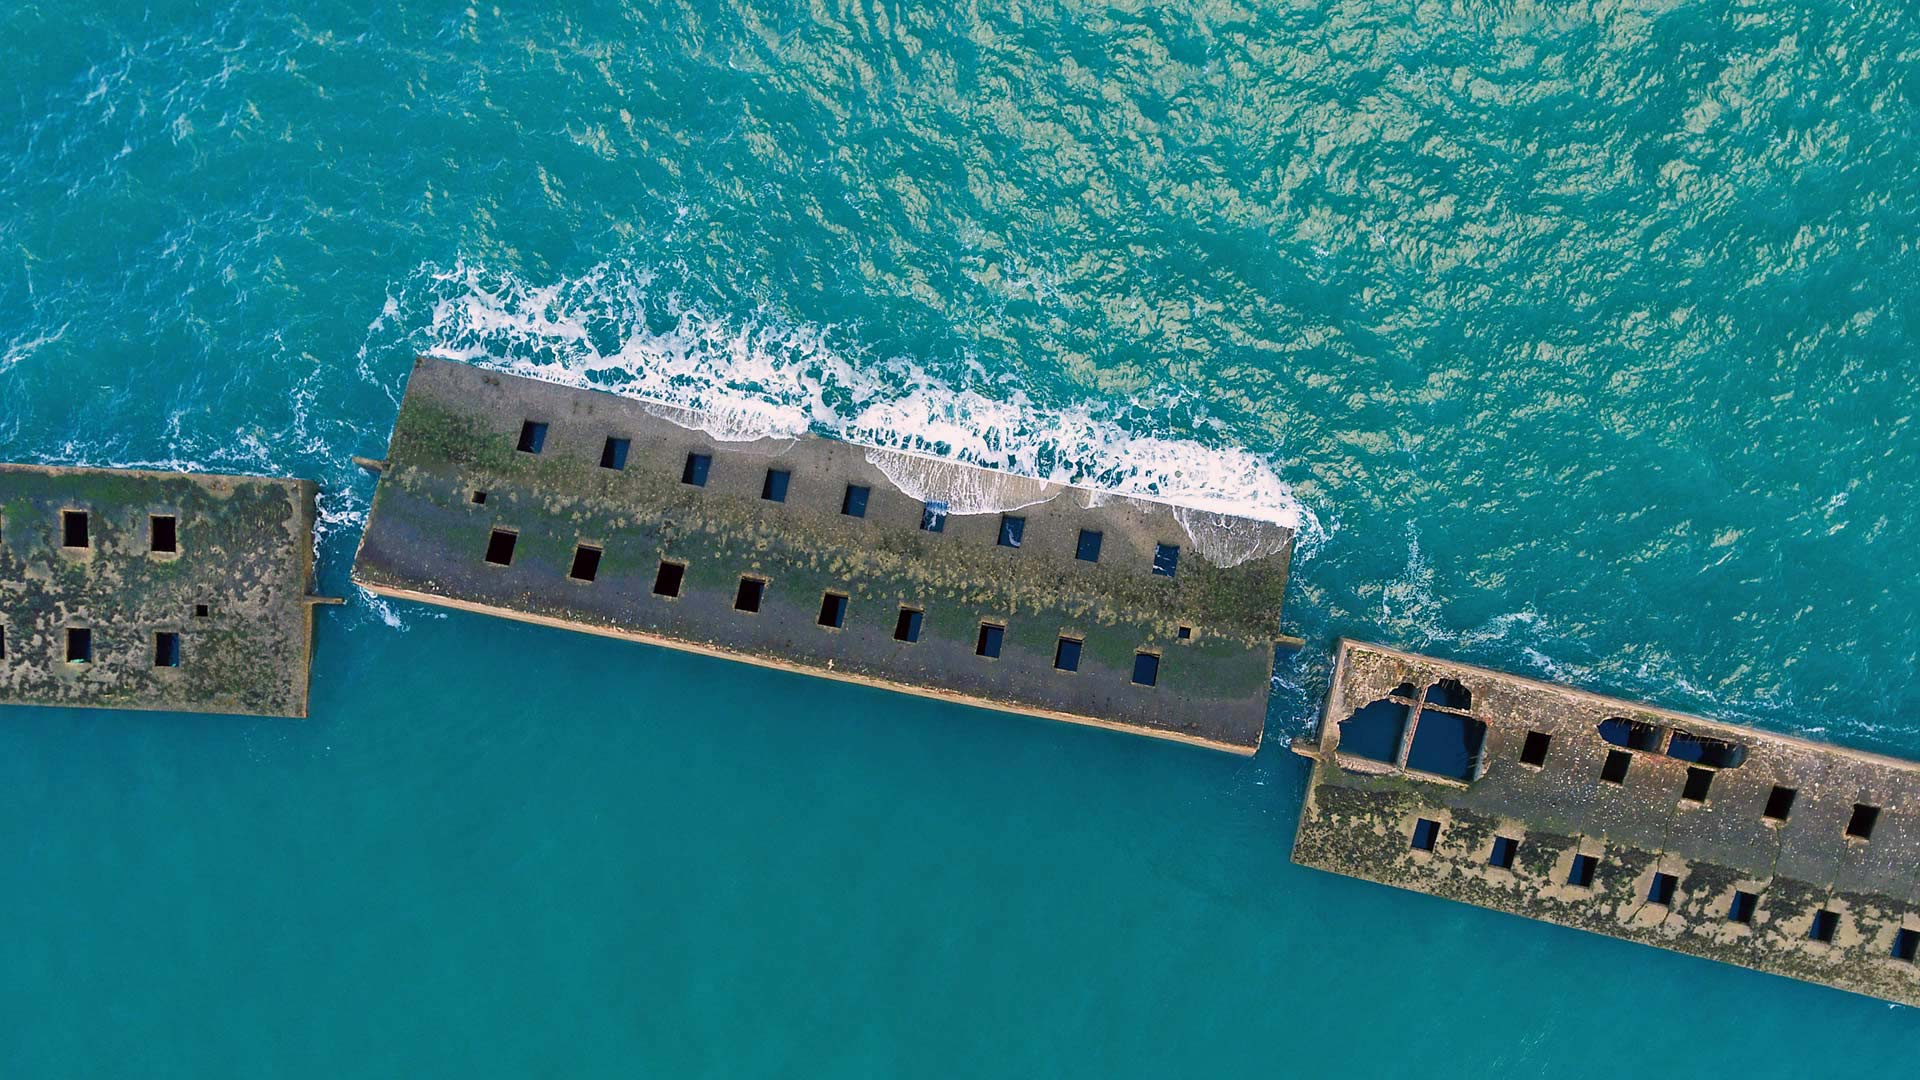 Remains of Mulberry Harbour from the D-Day invasion, Arromanches les Bains, Normandy, France (© Javier Gil/Alamy)